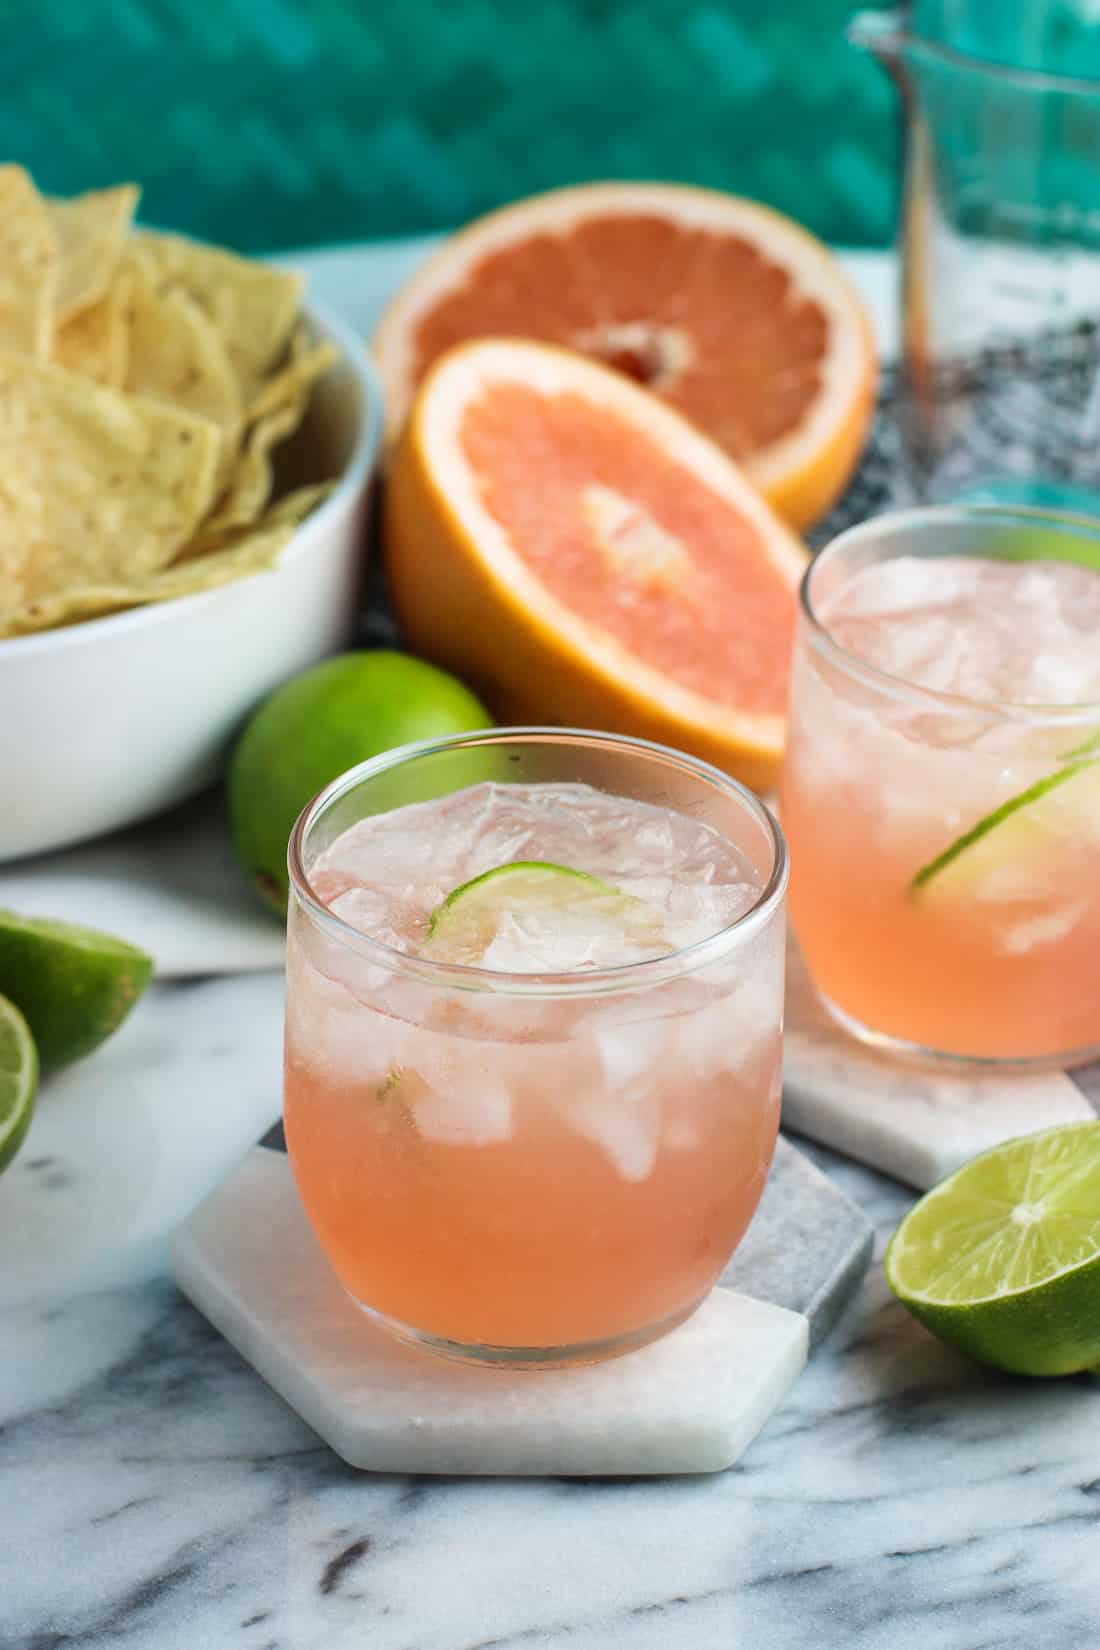 Fruity vodka sodas are an easy summer cocktail recipe perfect for backyard BBQs, lounging poolside, and more. Minimal ingredients are needed to make either pineapple mint or grapefruit lime versions - both are flavorful and refreshing!